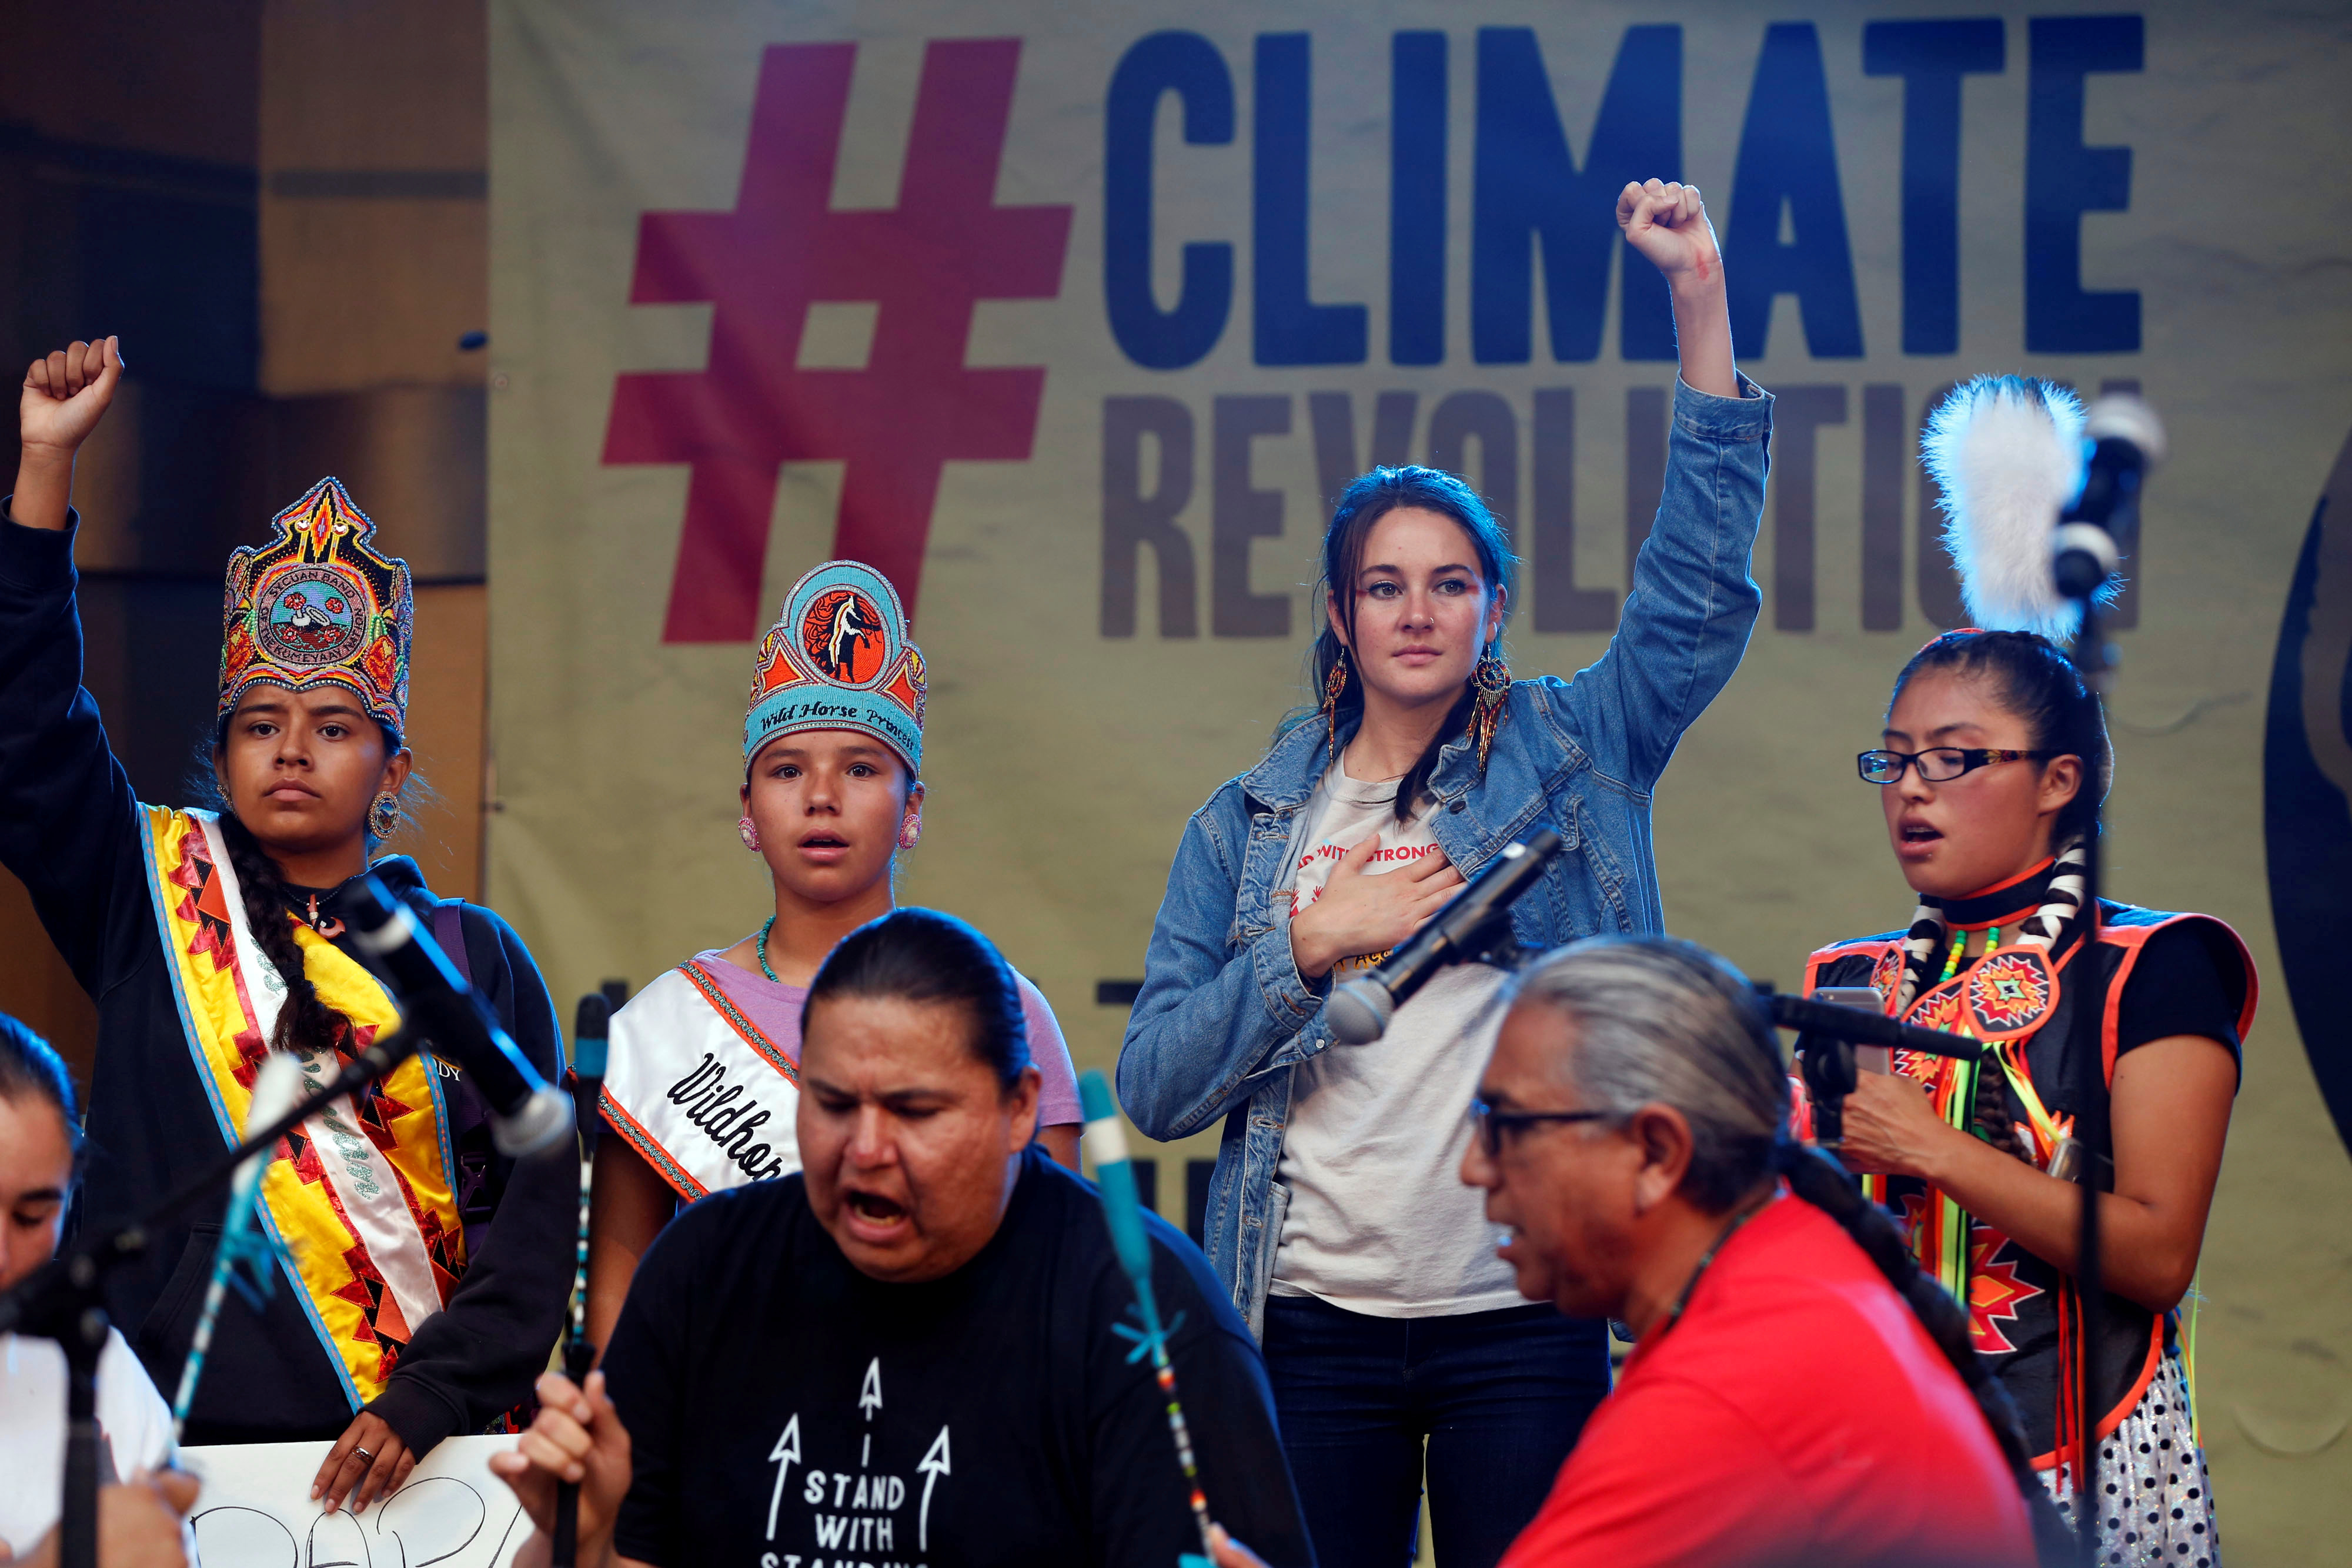 Actor Shailene Woodley stands with Native Americans on stage during a climate change rally in solidarity with protests of the pipeline in North Dakota at MacArthur Park in Los Angeles, California Oct. 23, 2016.